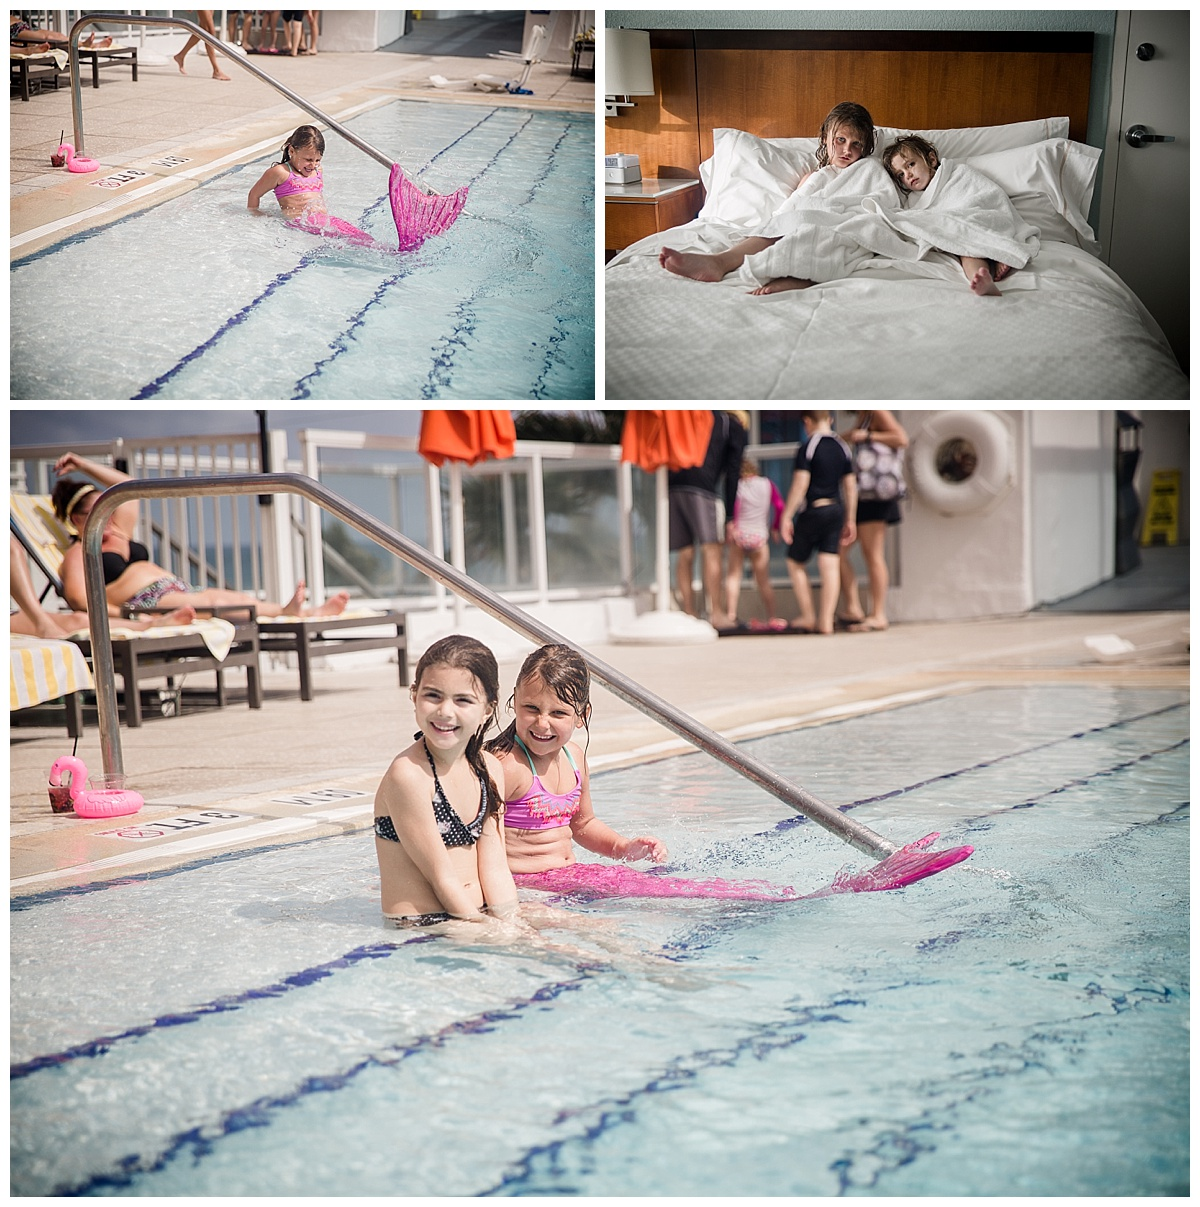 girls playing in pool with mermaid tail